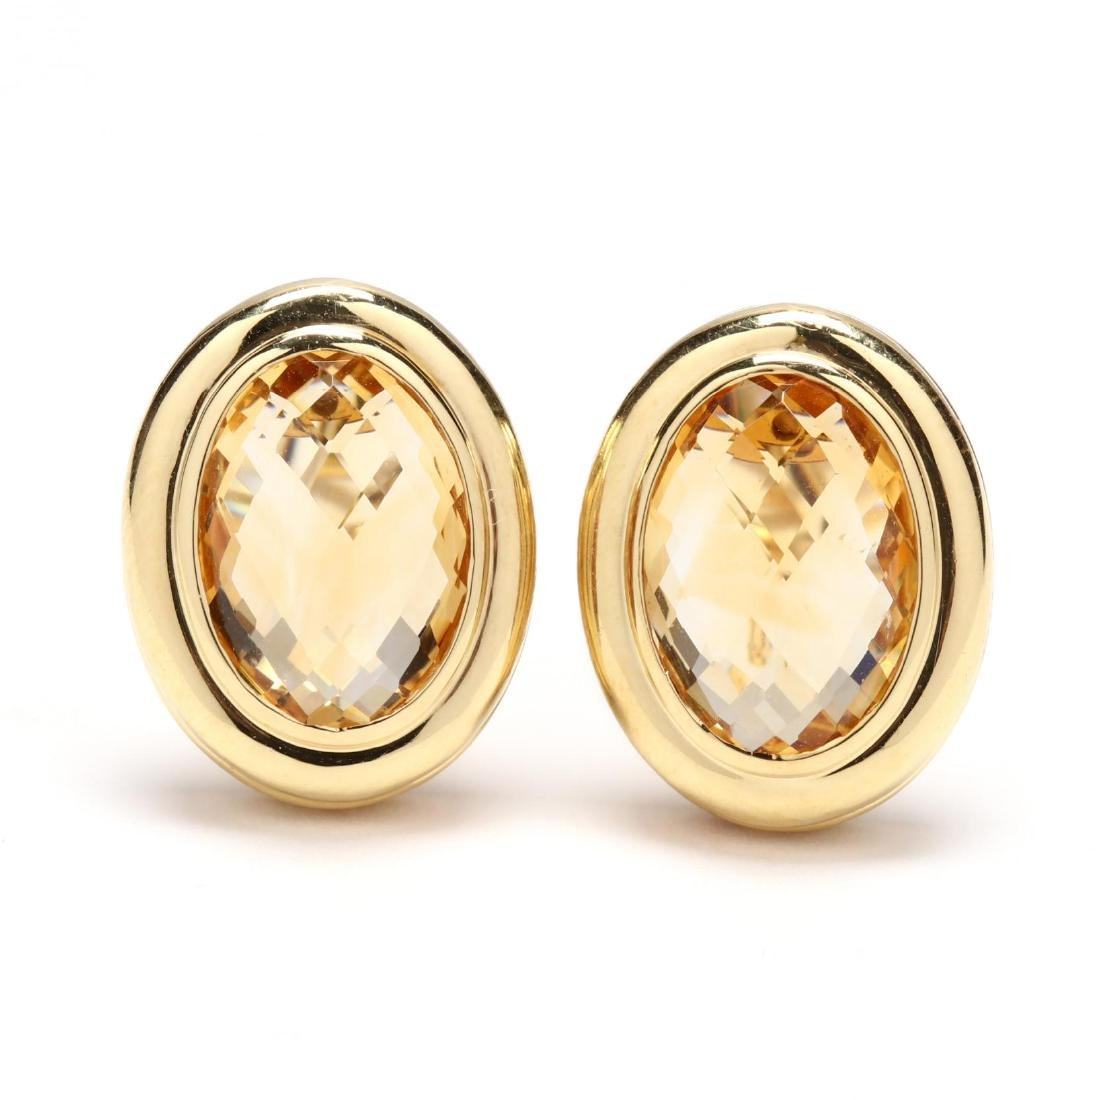 18KT Gold and Citrine Earrings, David Yurman